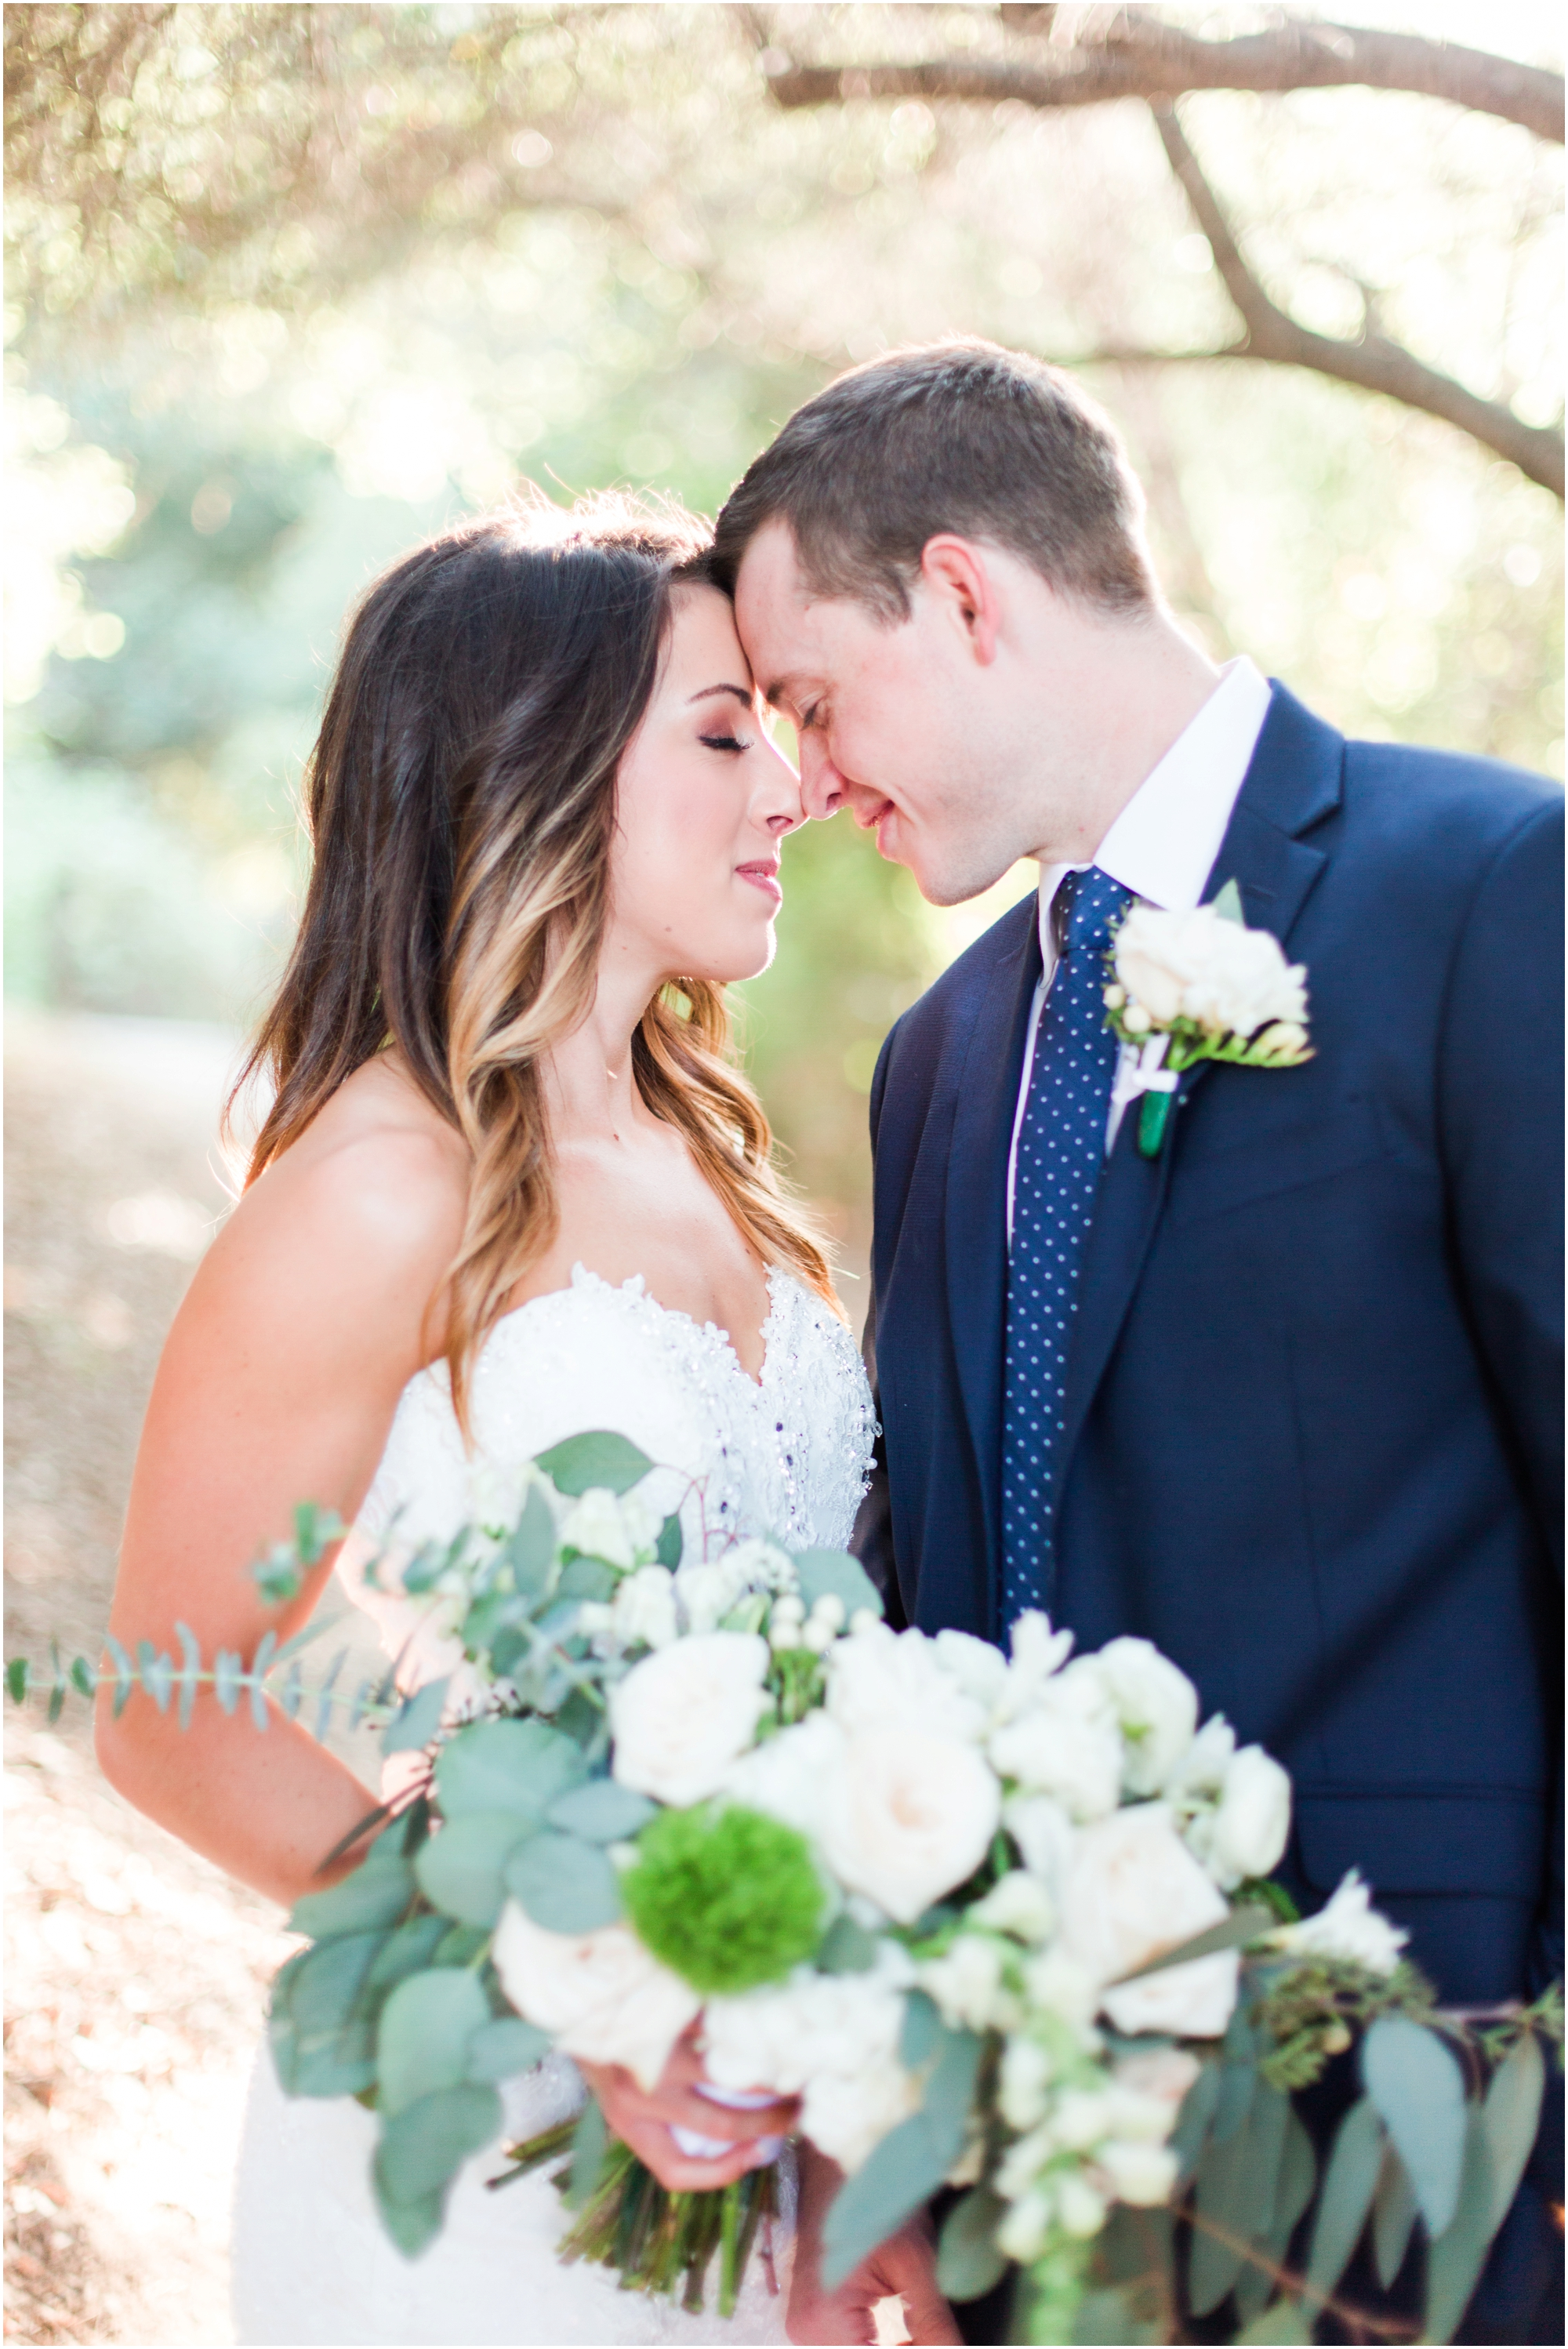 Picchetti Winery wedding pictures by Briana Calderon Photography_2056.jpg